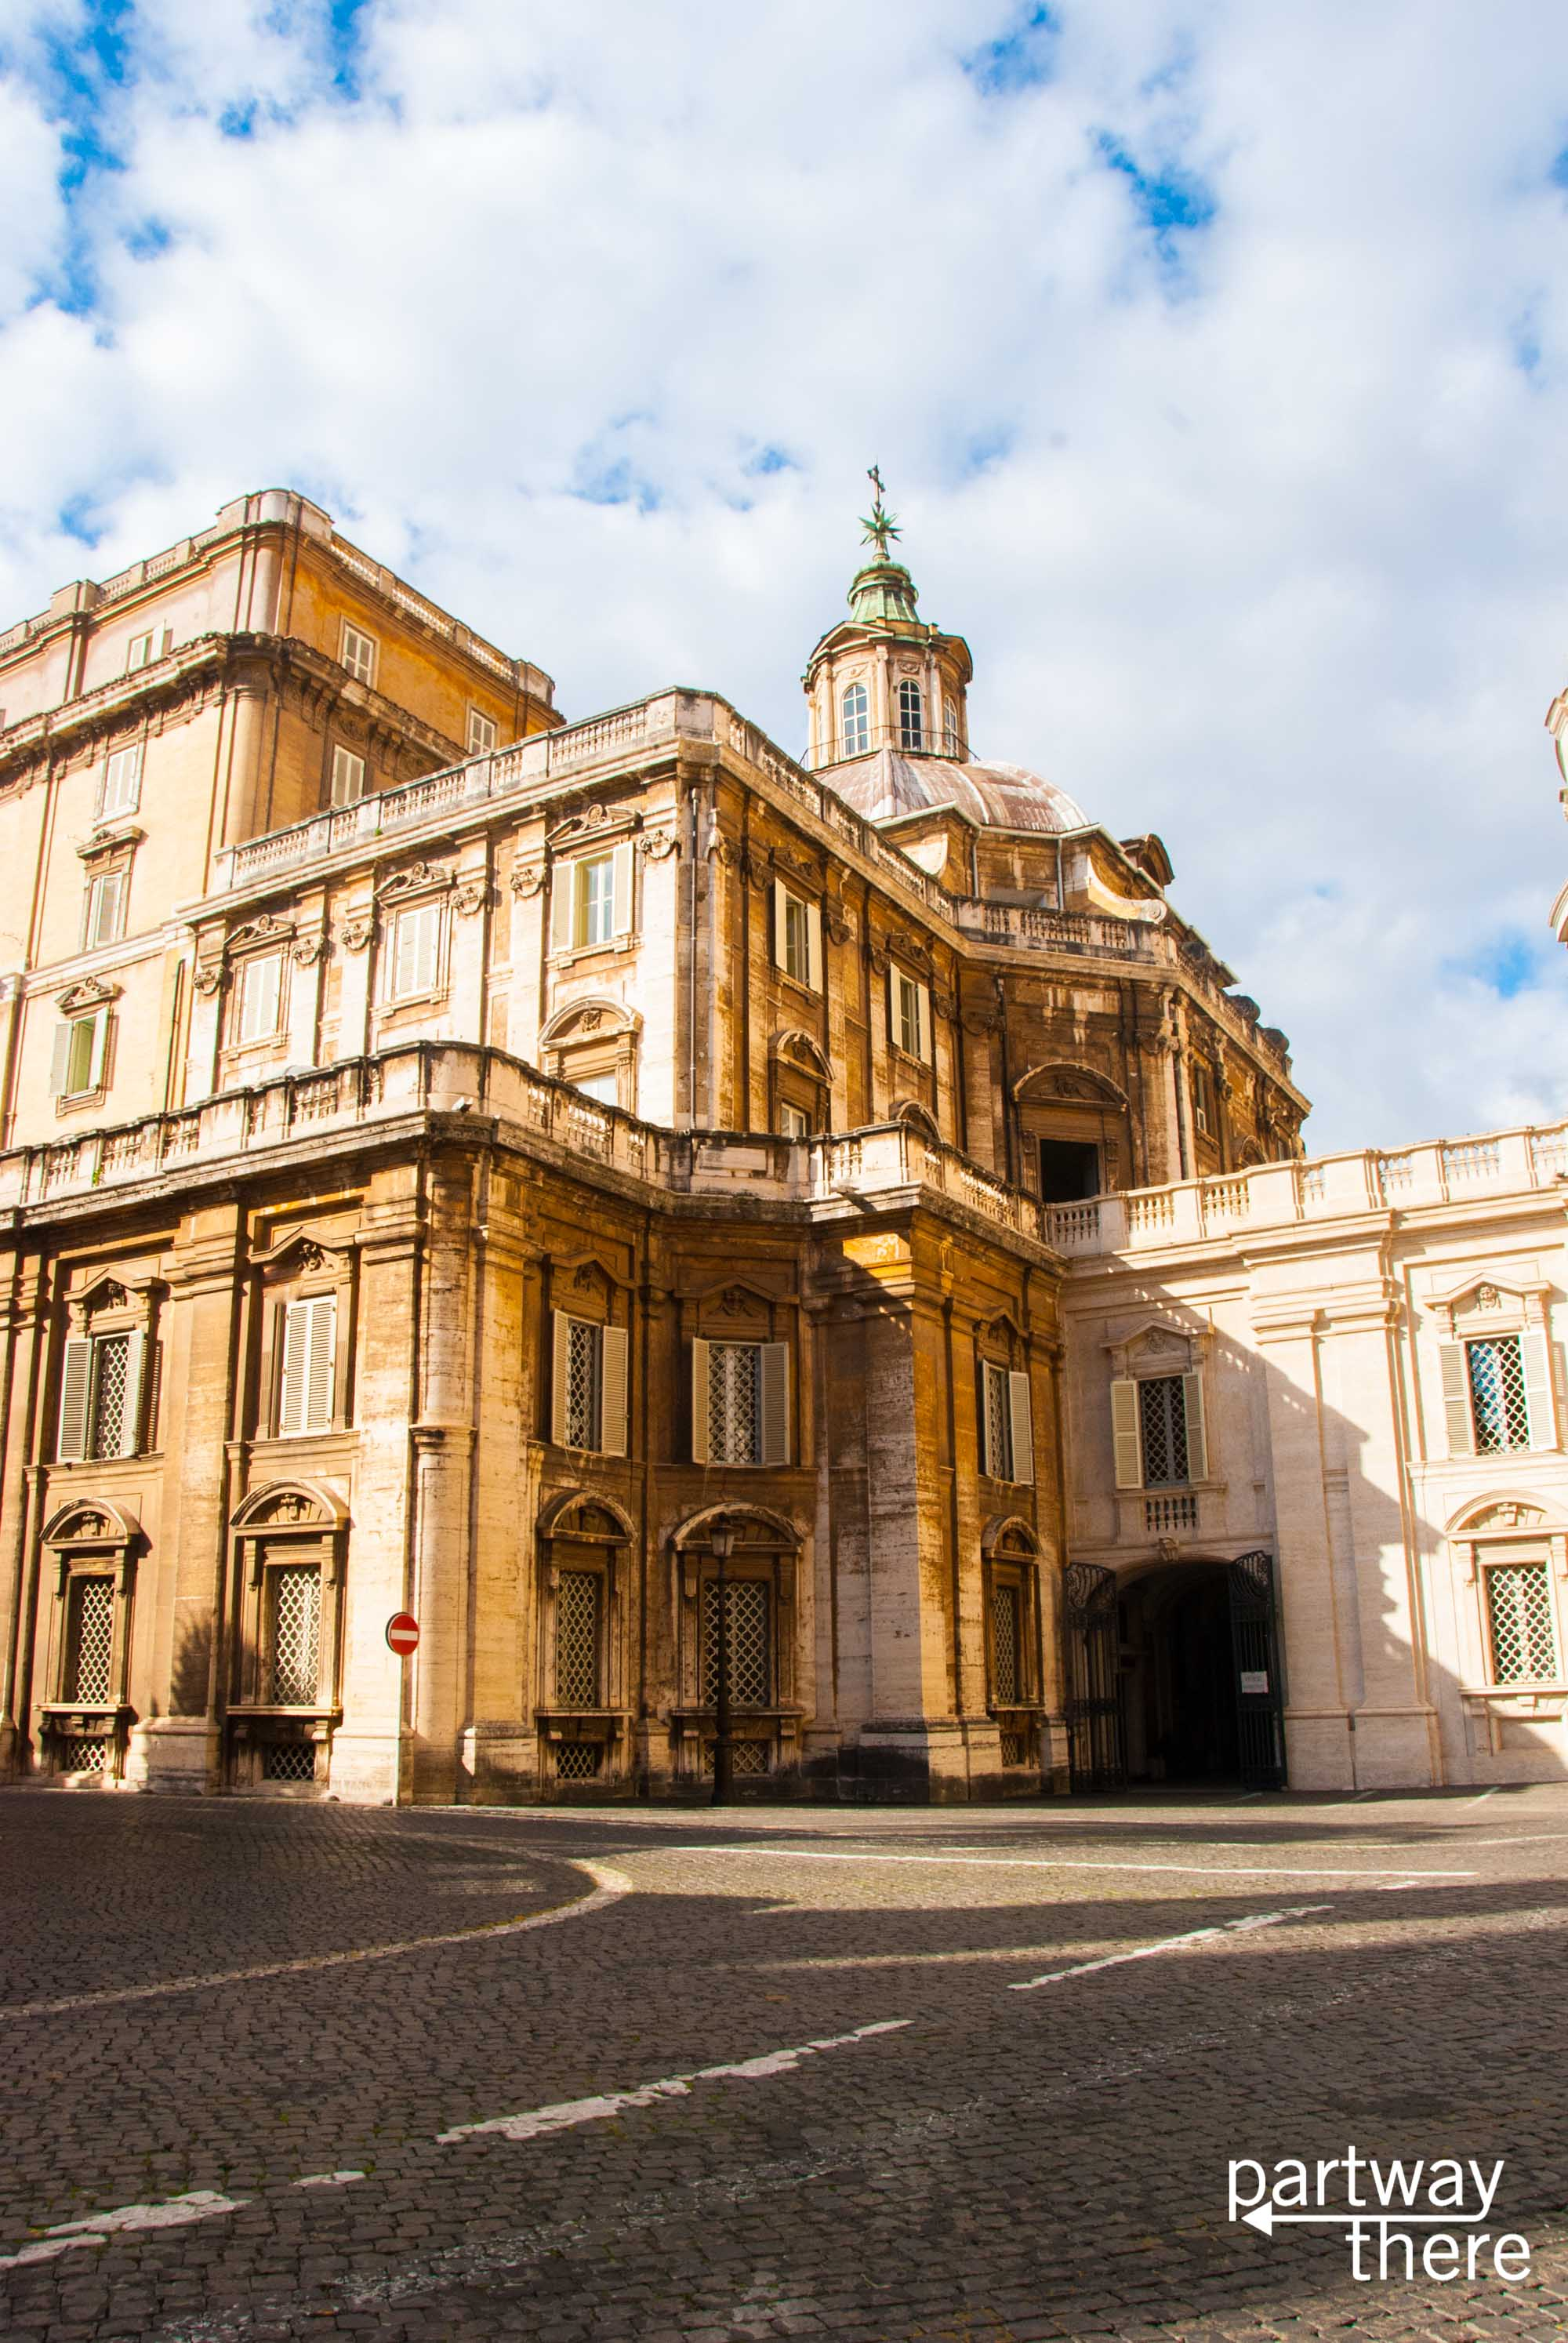 The Vatican Scavi Tour: What It Is & How To Get Tickets